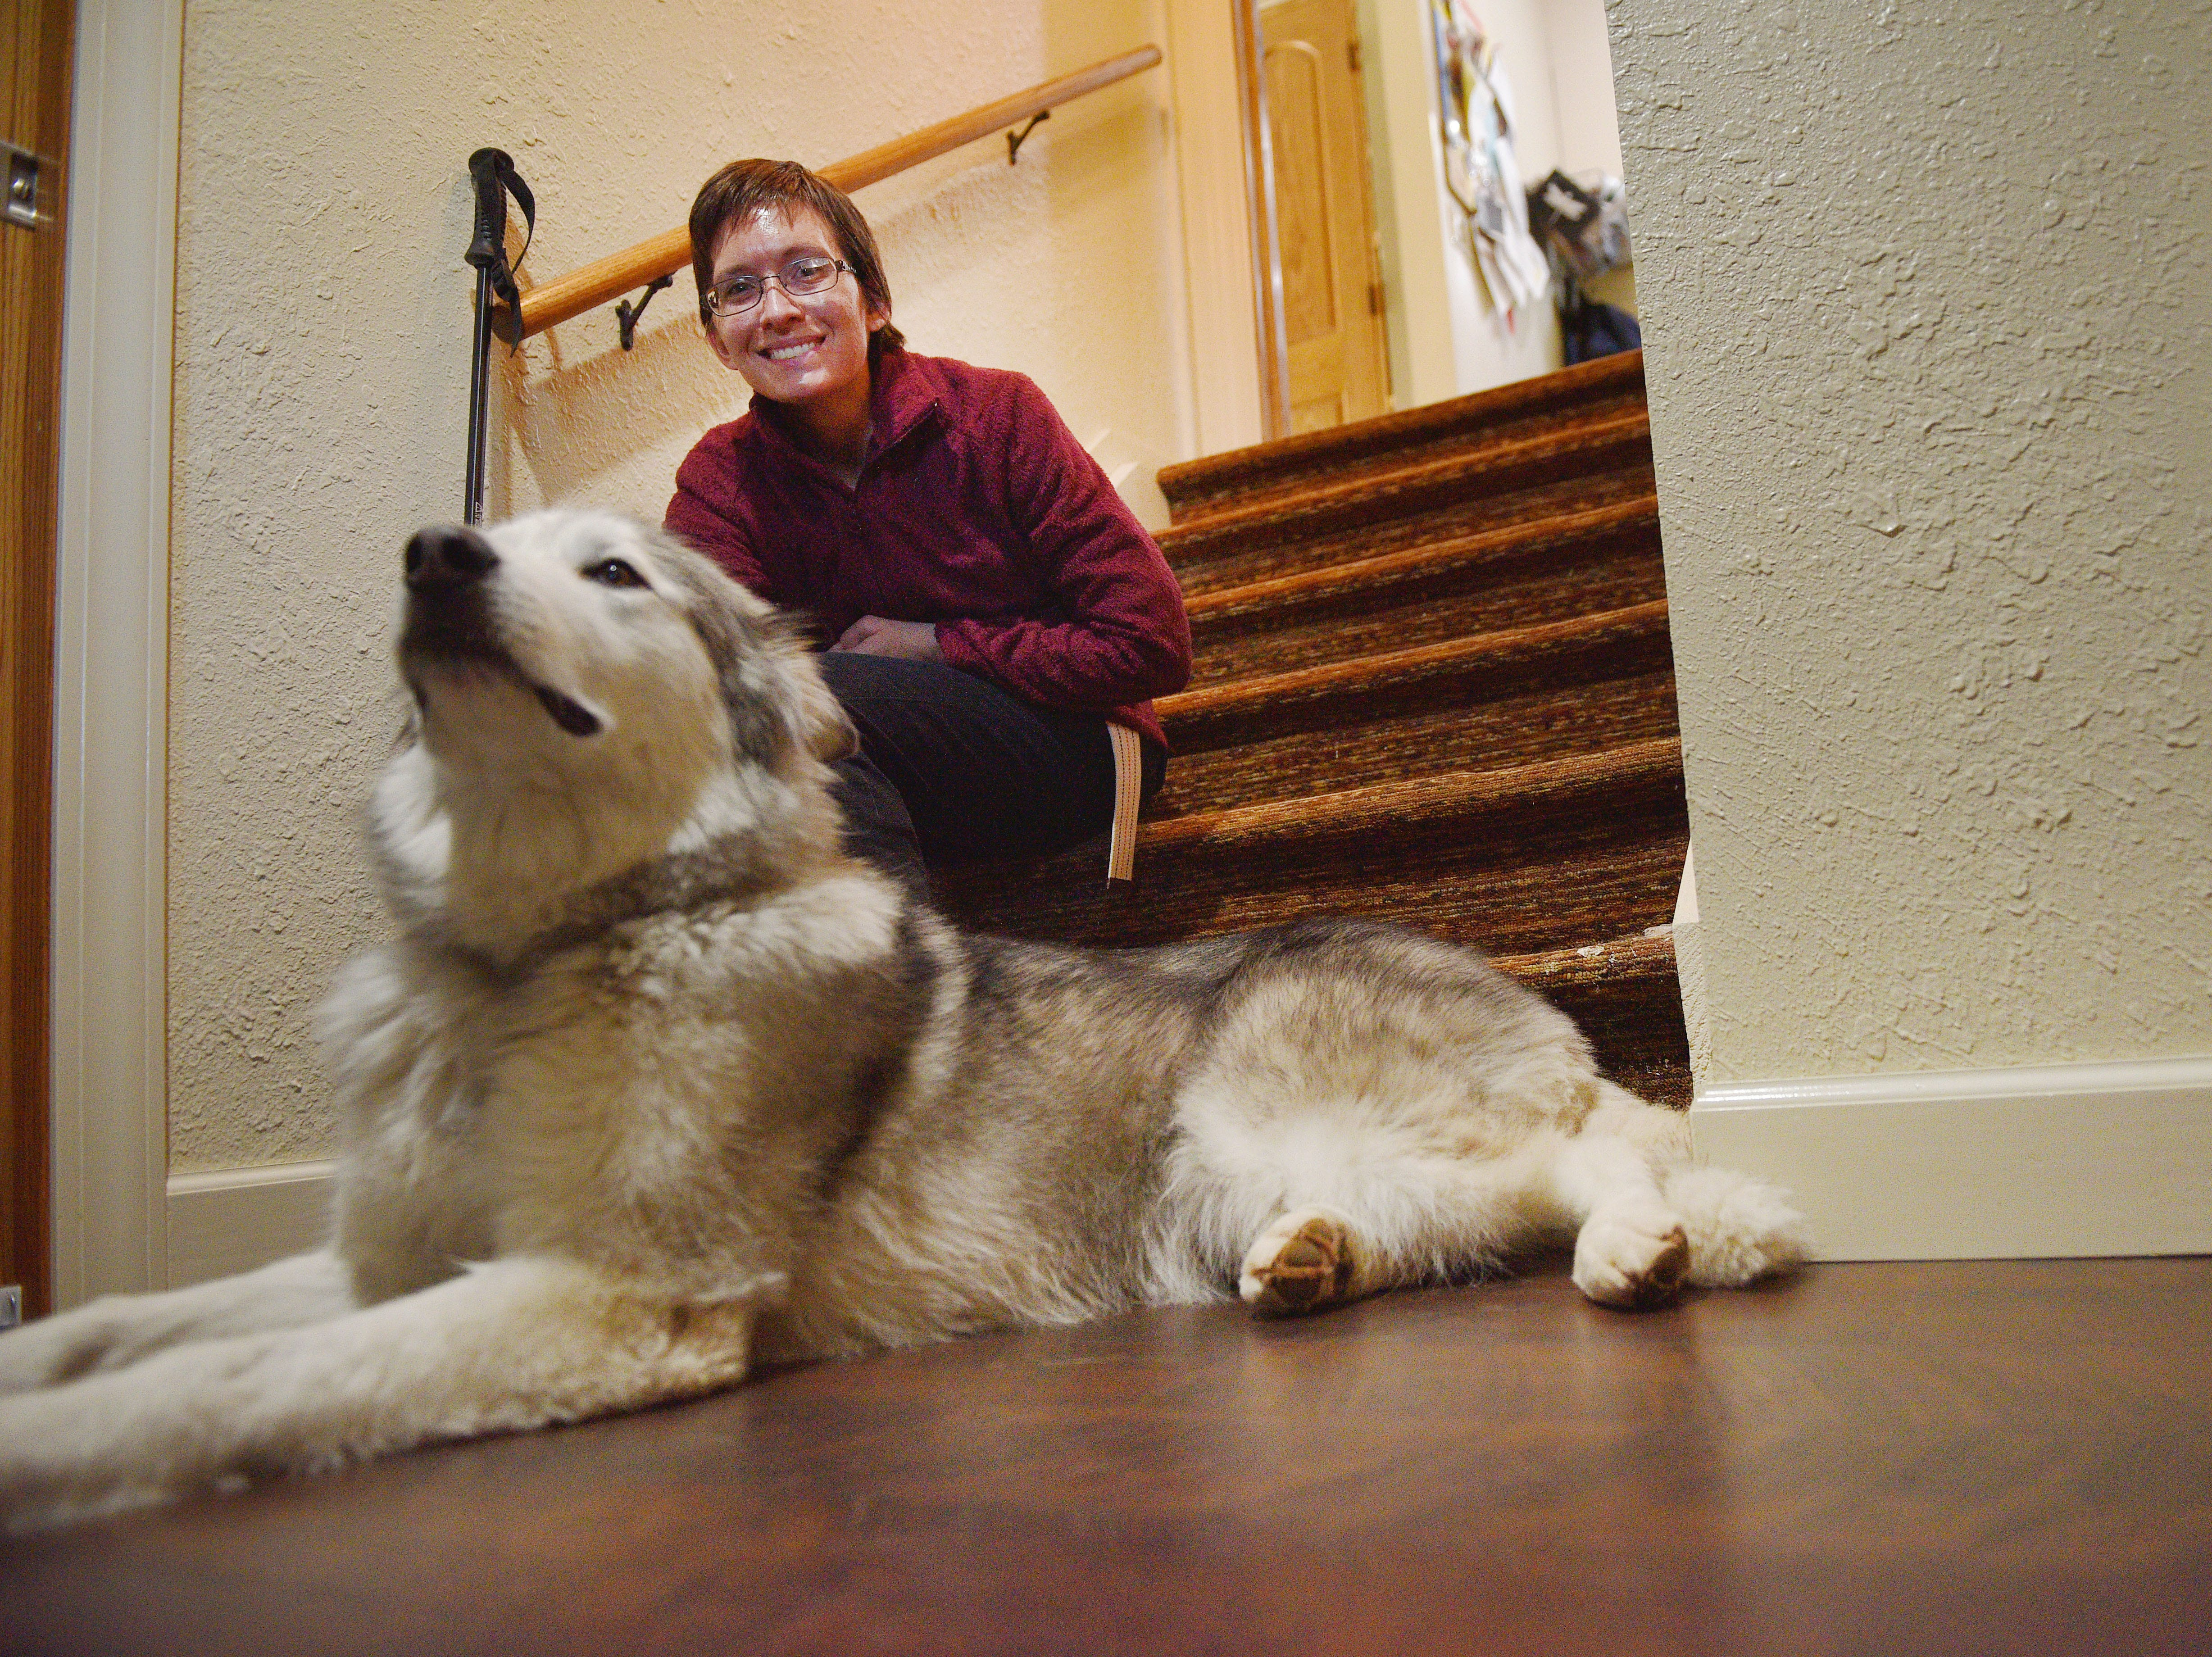 Ashley Van Hemert and her dog Bronson, Friday Sept. 28, at their home in Sioux Falls. Bronson was not home the night Joseph DeWise broke into Ashley's home. She is grateful Bronson wasn't there. She said she doesn't know what could have happened to Bronson if he was there when DeWise started shooting.